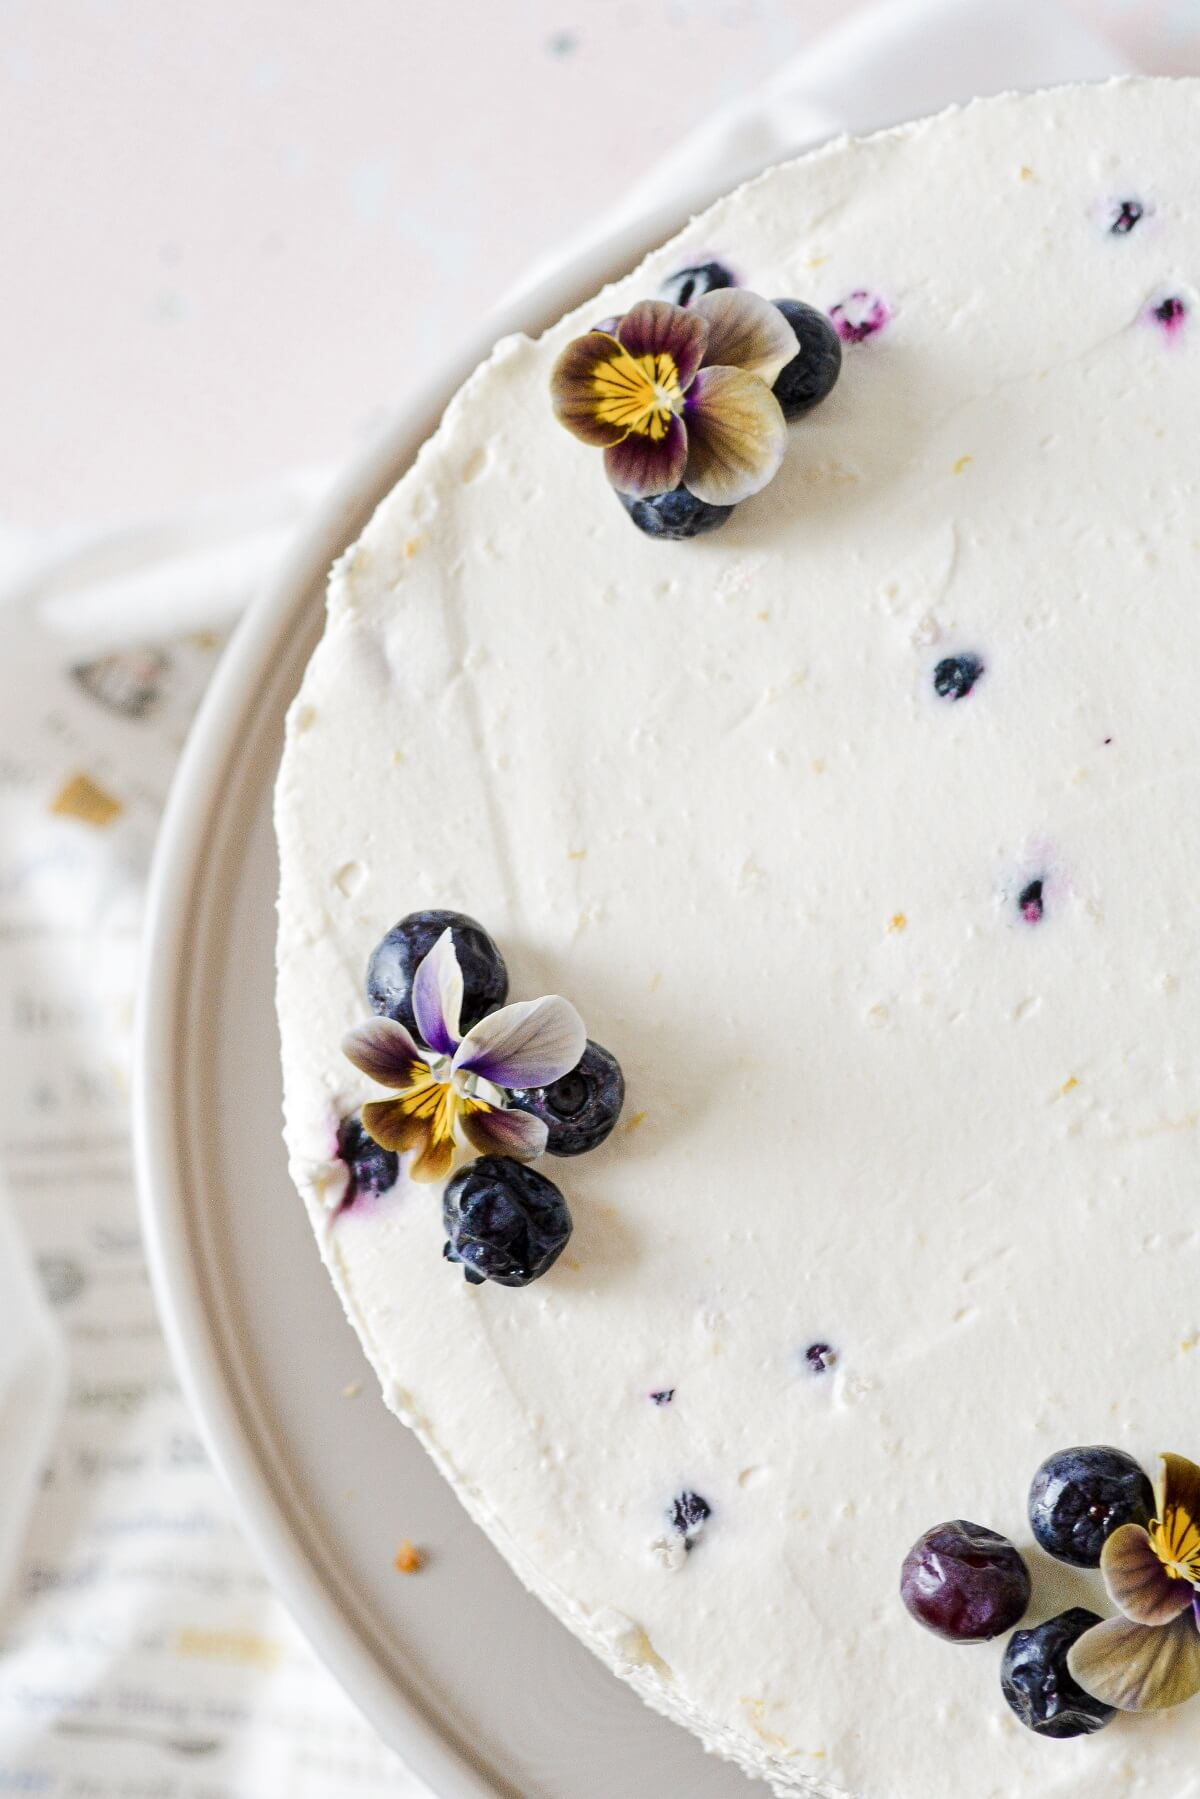 Lemon blueberry cheesecake, decorated with blueberries and edible flowers.